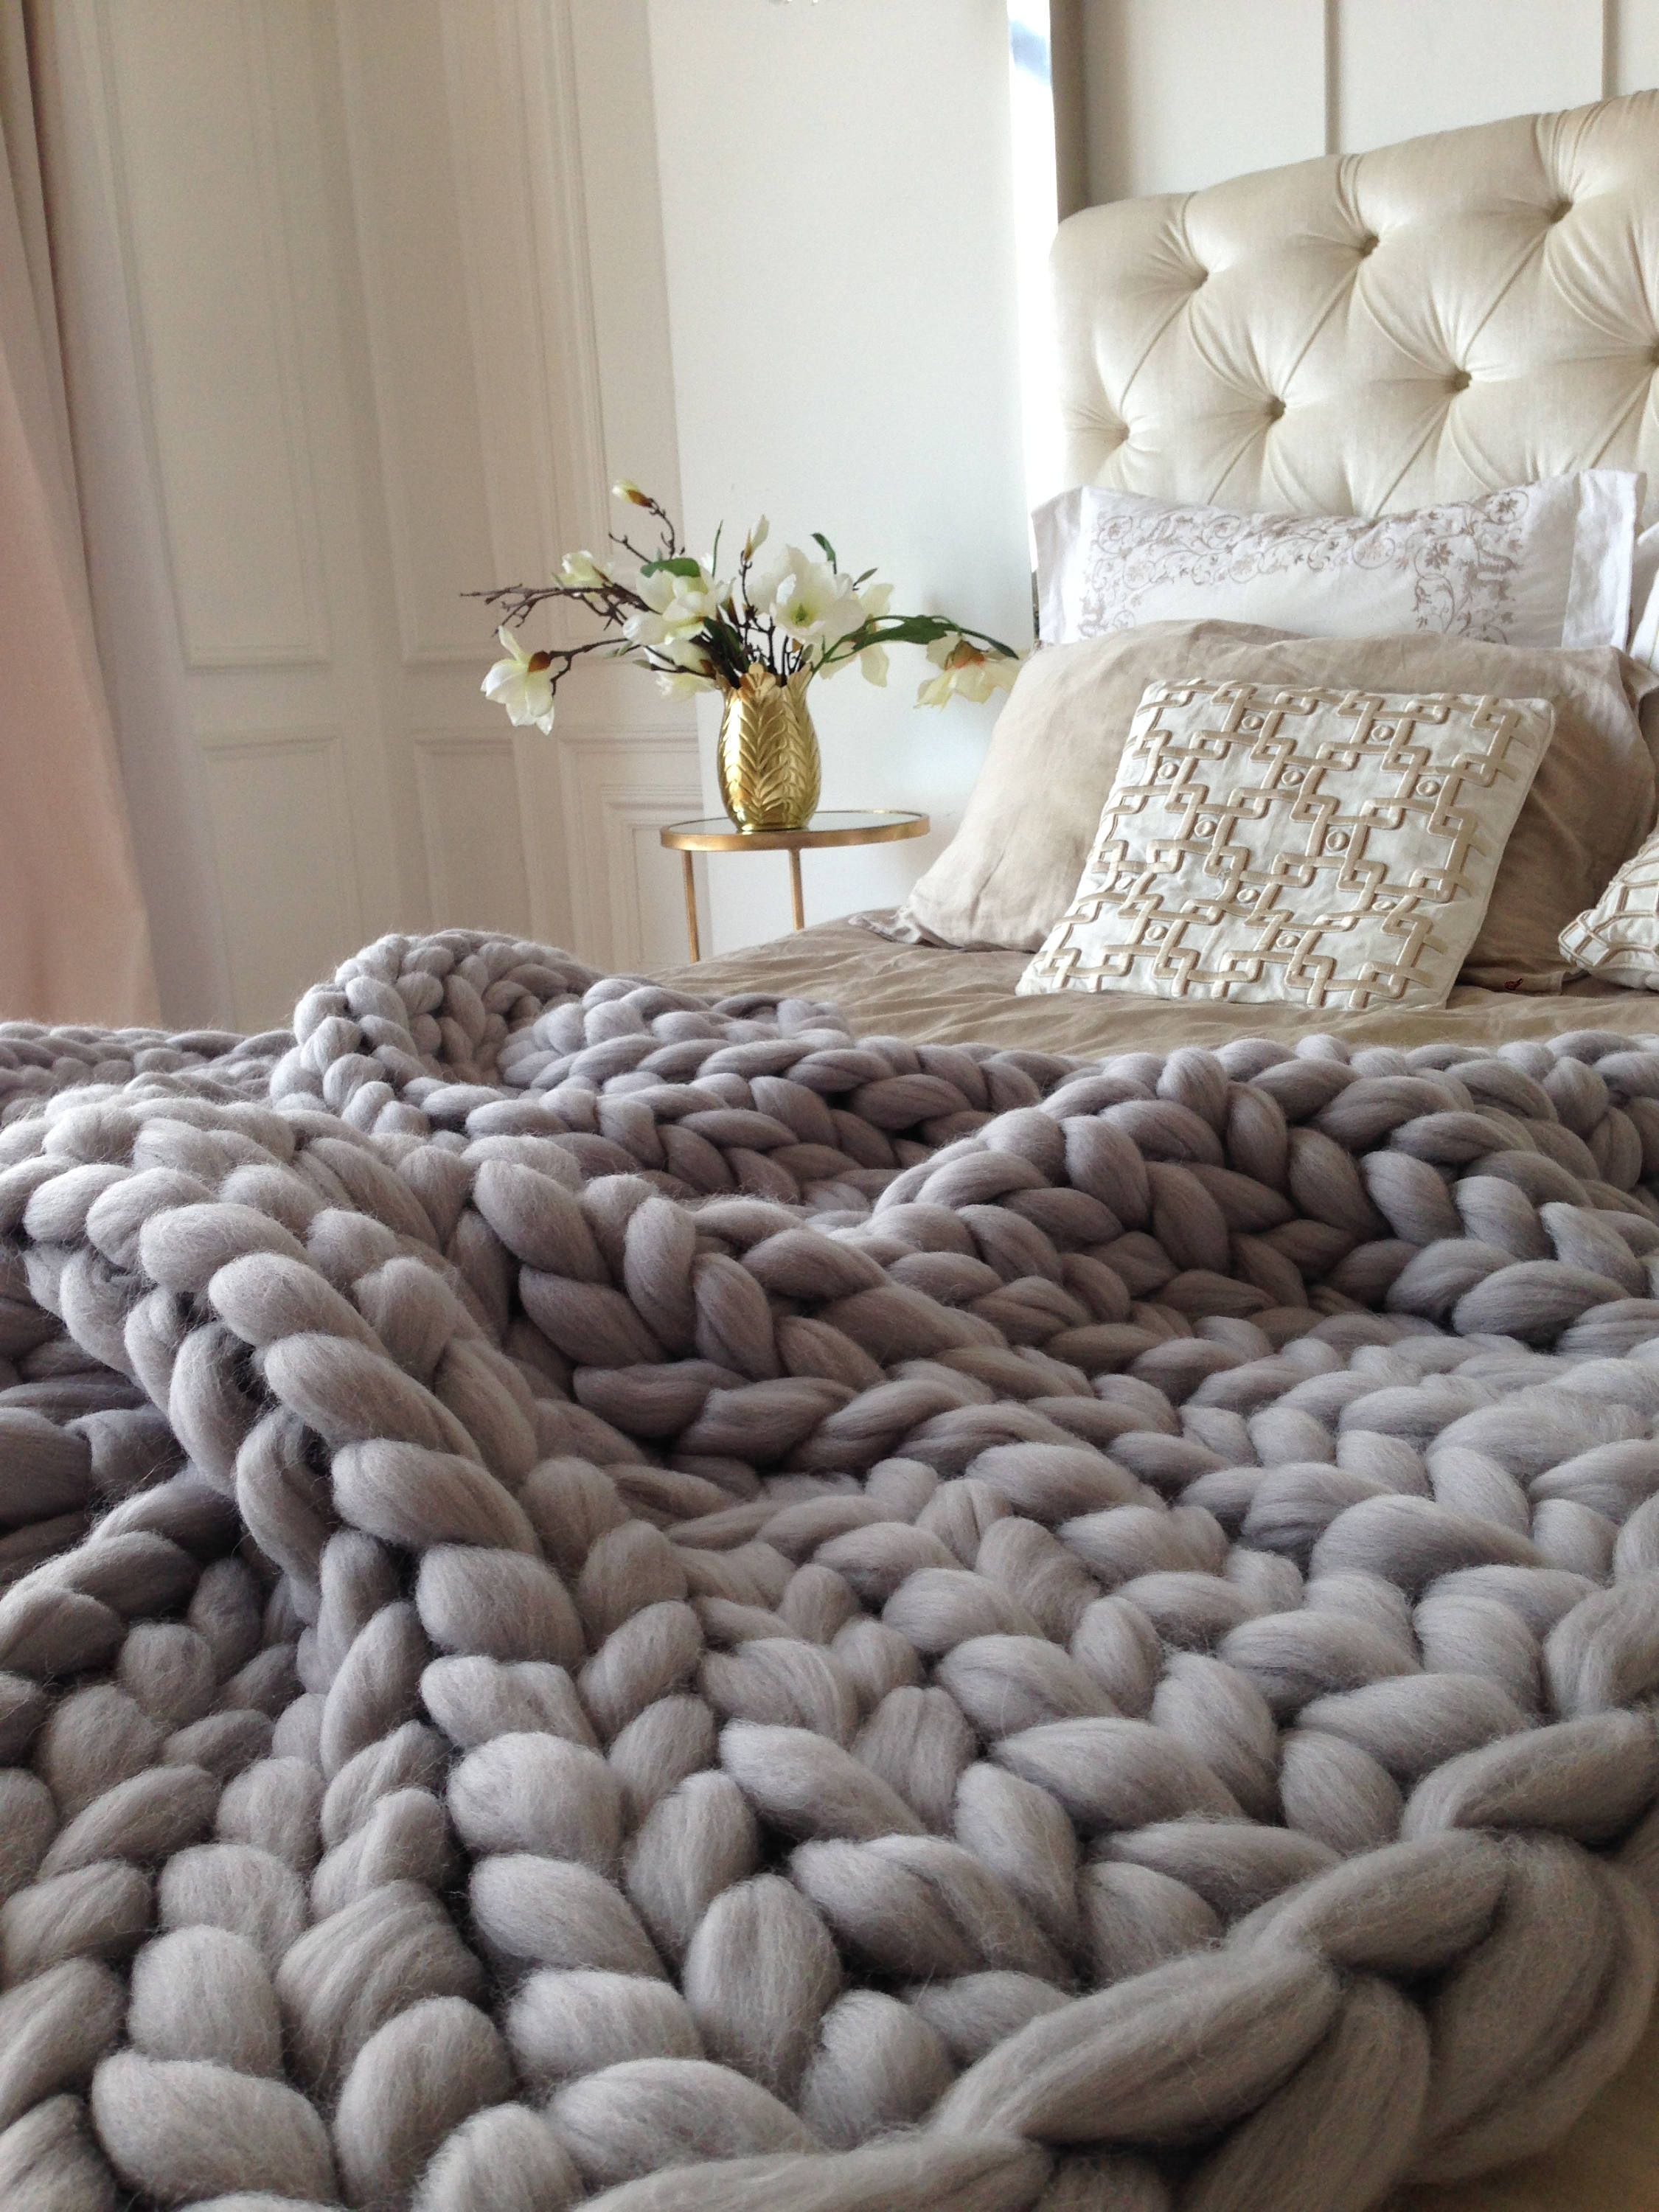 Grey Chunky Knit Throw Big Knit Blanket Large Knit Blanket Chunky Knit Blanket Grey Merino Wo Large Knit Blanket Chunky Knit Throw Blanket Knitted Blankets